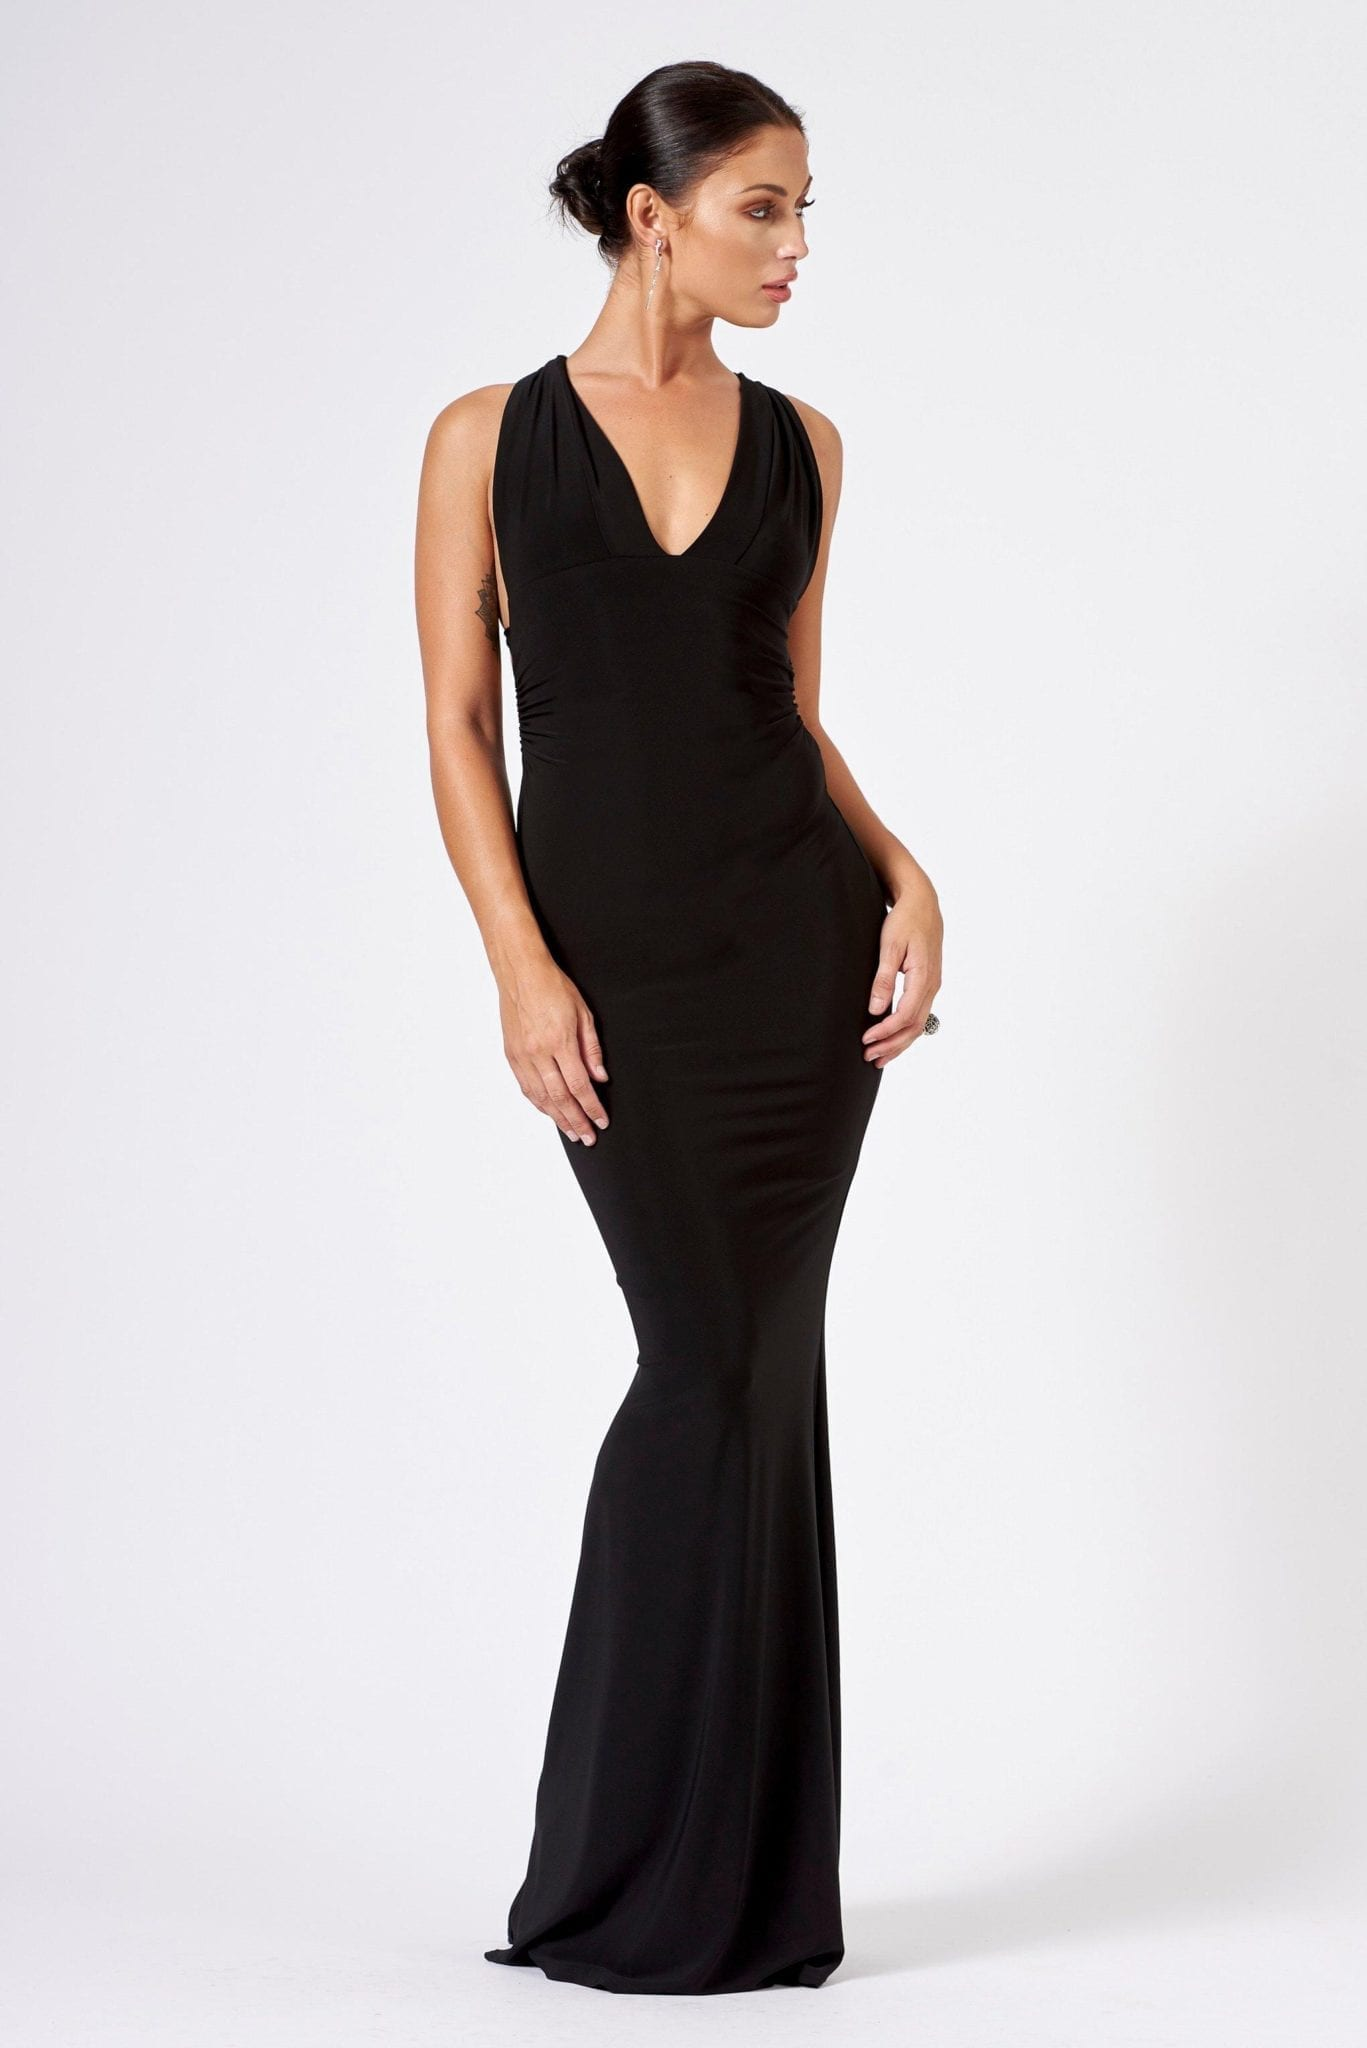 CLUB L LONDON Open Back Strap Maxi Black Dress